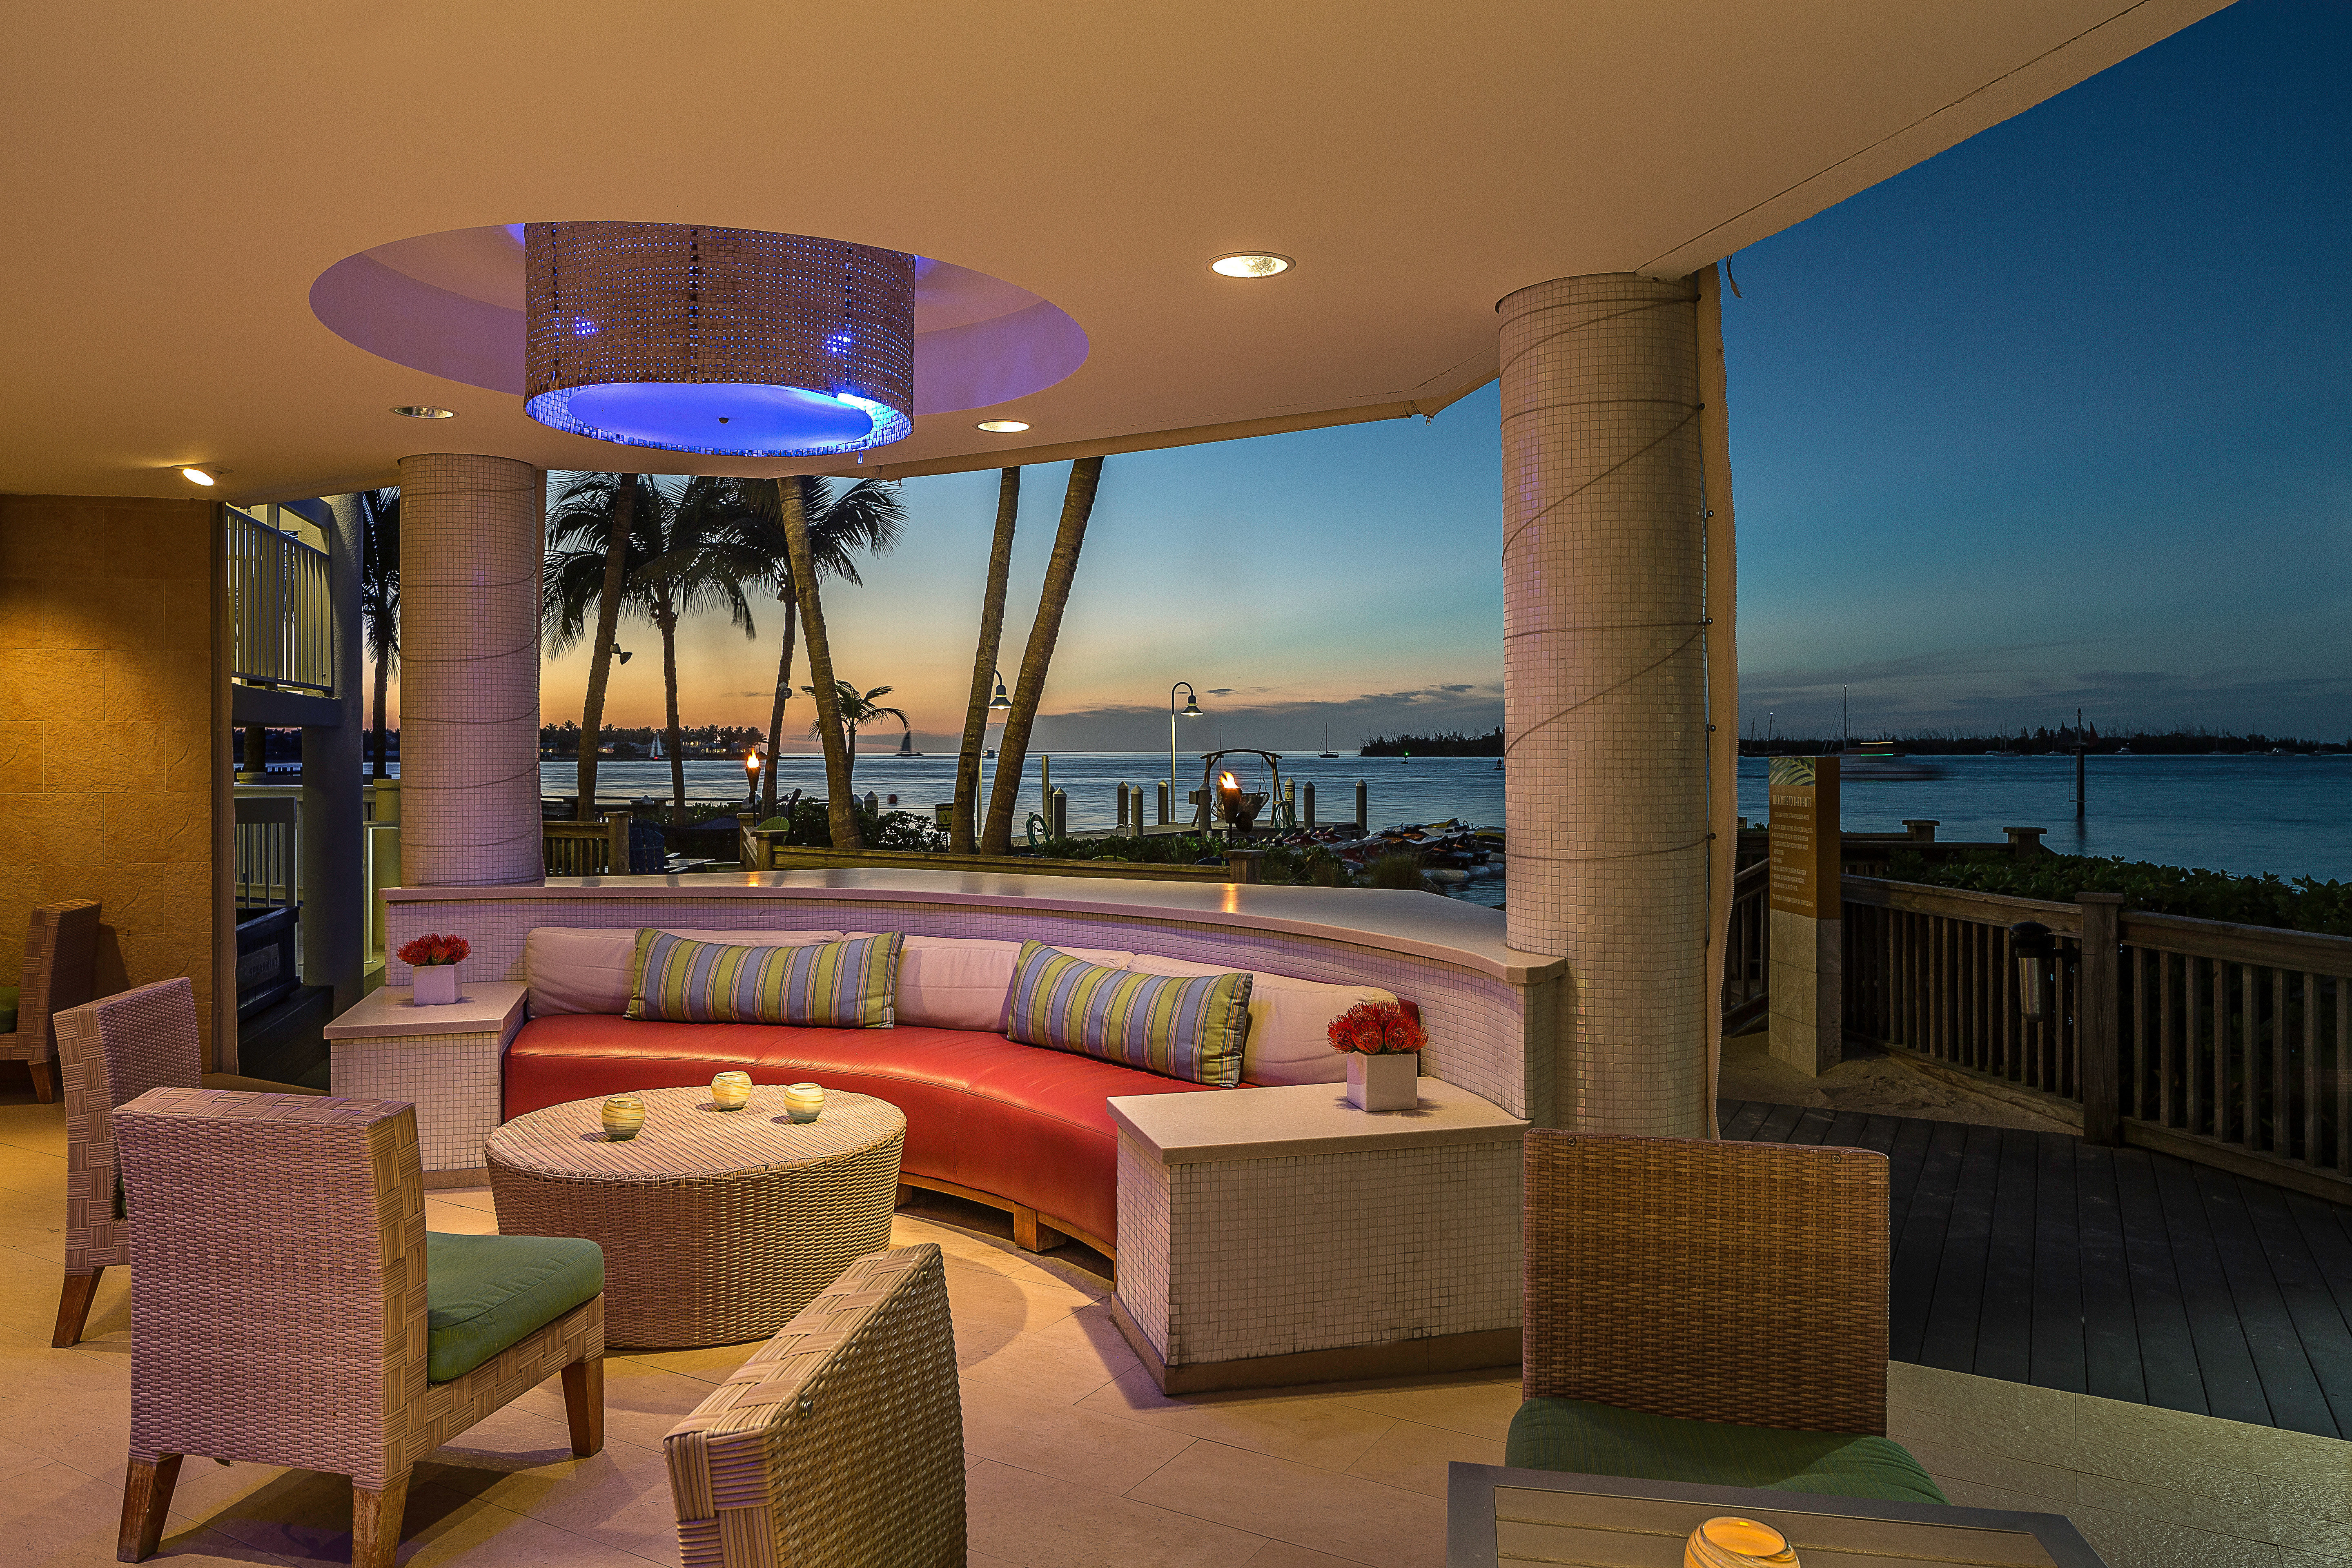 Beachfront Dining Drink Eat Hip Luxury sky chair property Resort swimming pool Villa home condominium restaurant Suite living room colorful